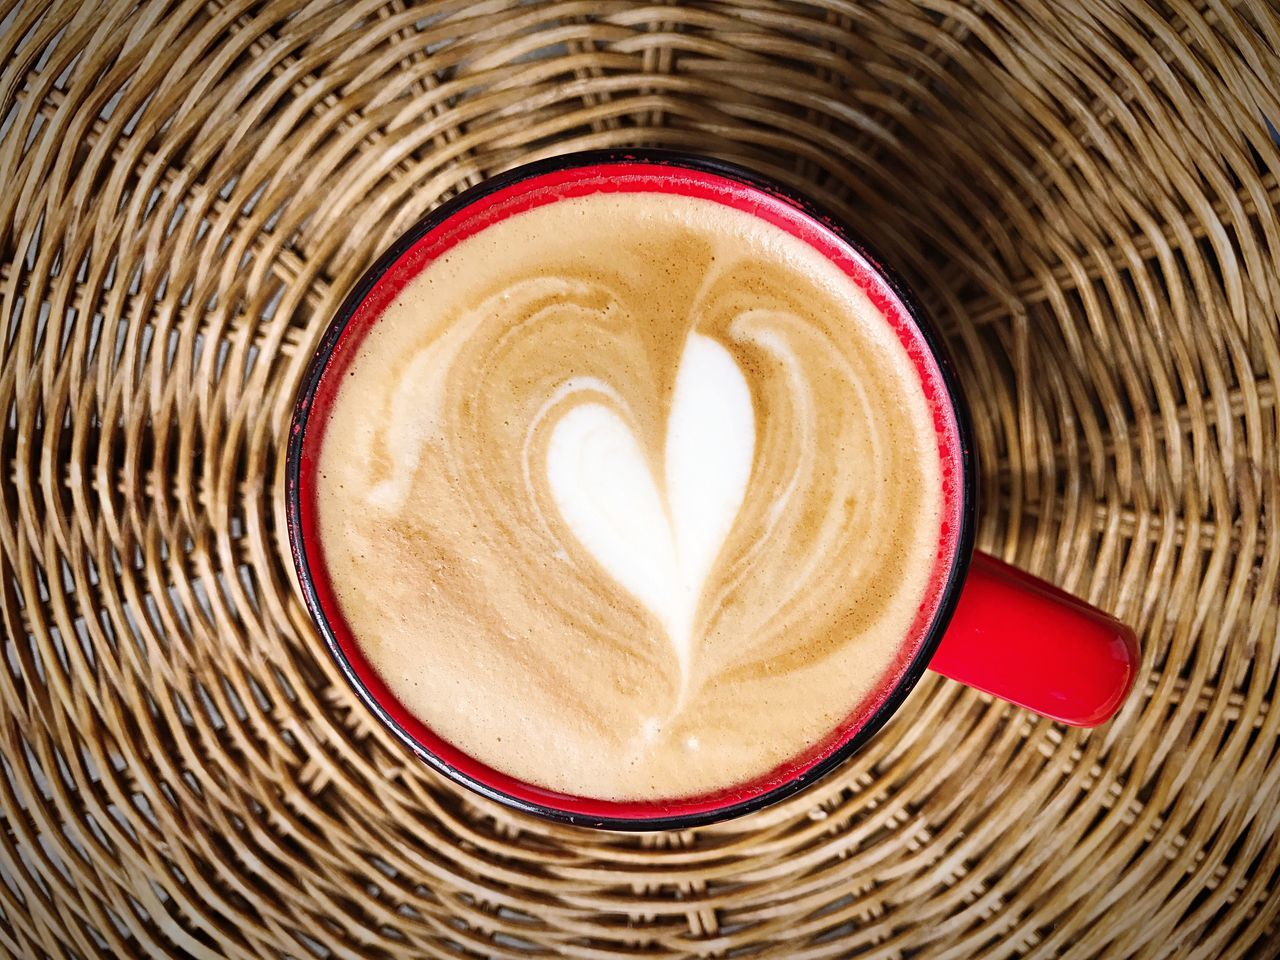 Love Coffee Coffee Time Coffee - Drink Heart Creativity Drink Heart Shape Coffee Cup Cappuccino Directly Above Food And Drink Love Pattern Latte No People Indoors  Froth Art Close-up Frothy Drink Concentric Freshness Day Food